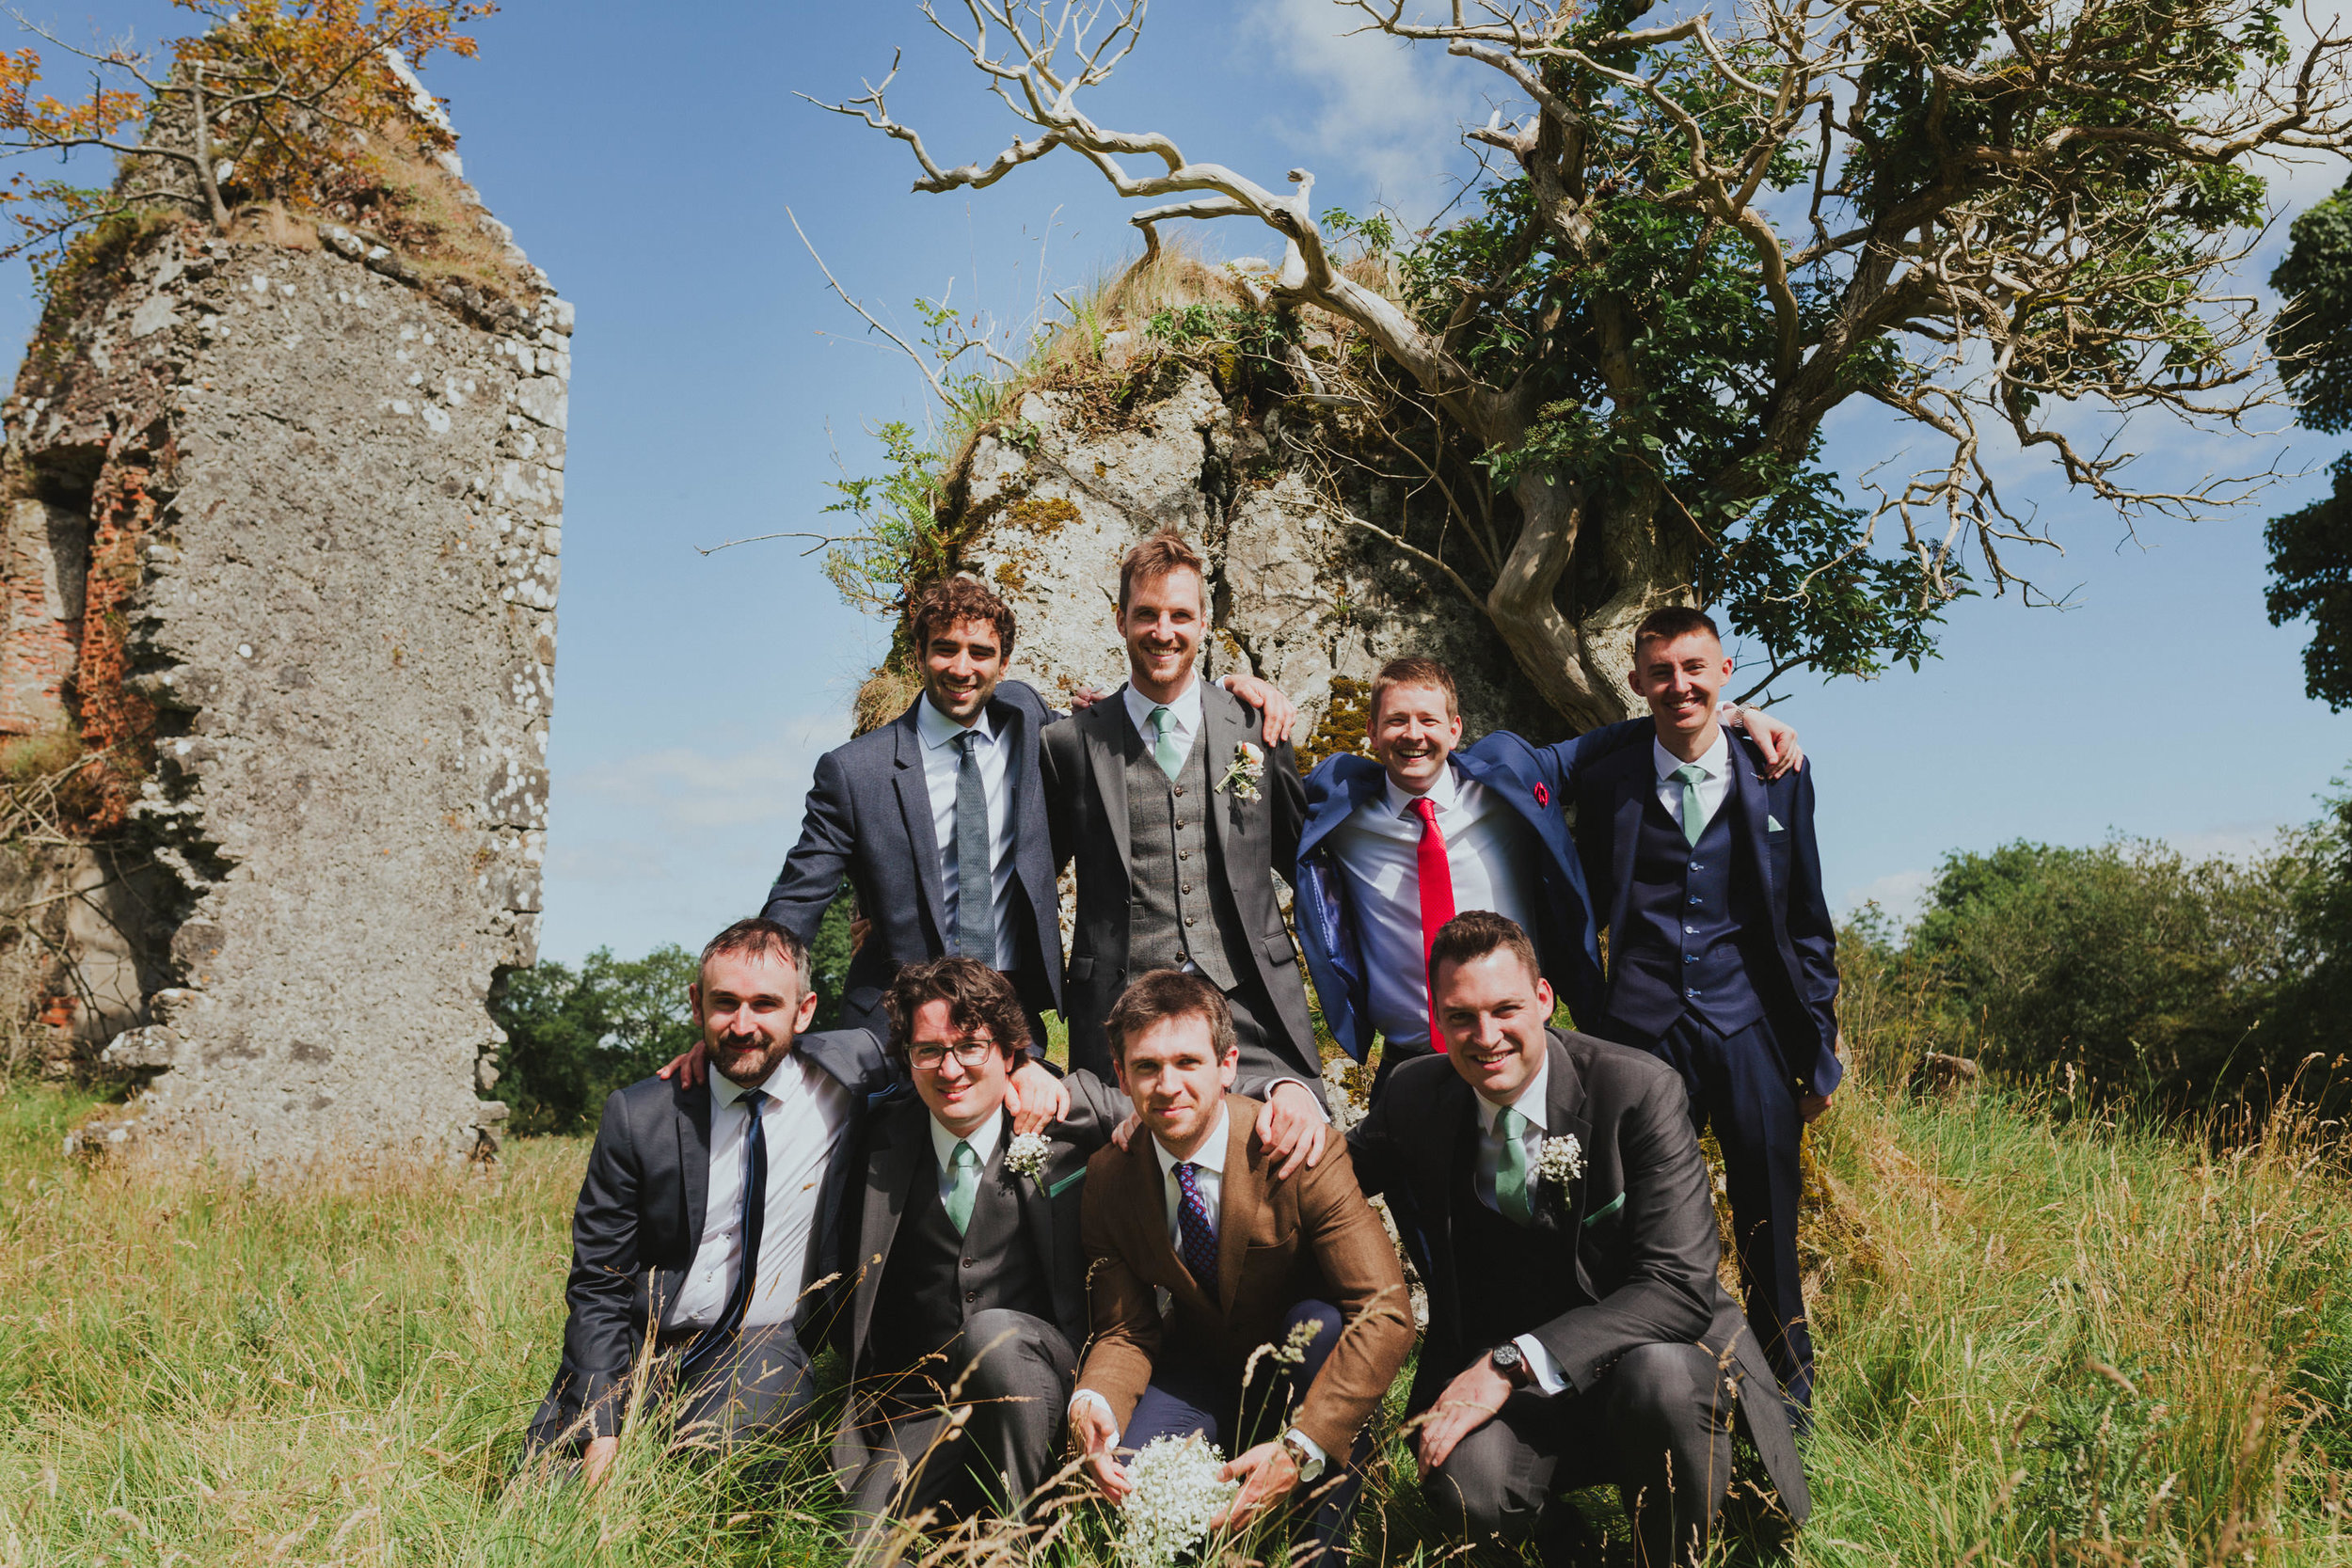 a+s_temple_house_sligo_wedding_livia_figueiredo_769.jpg